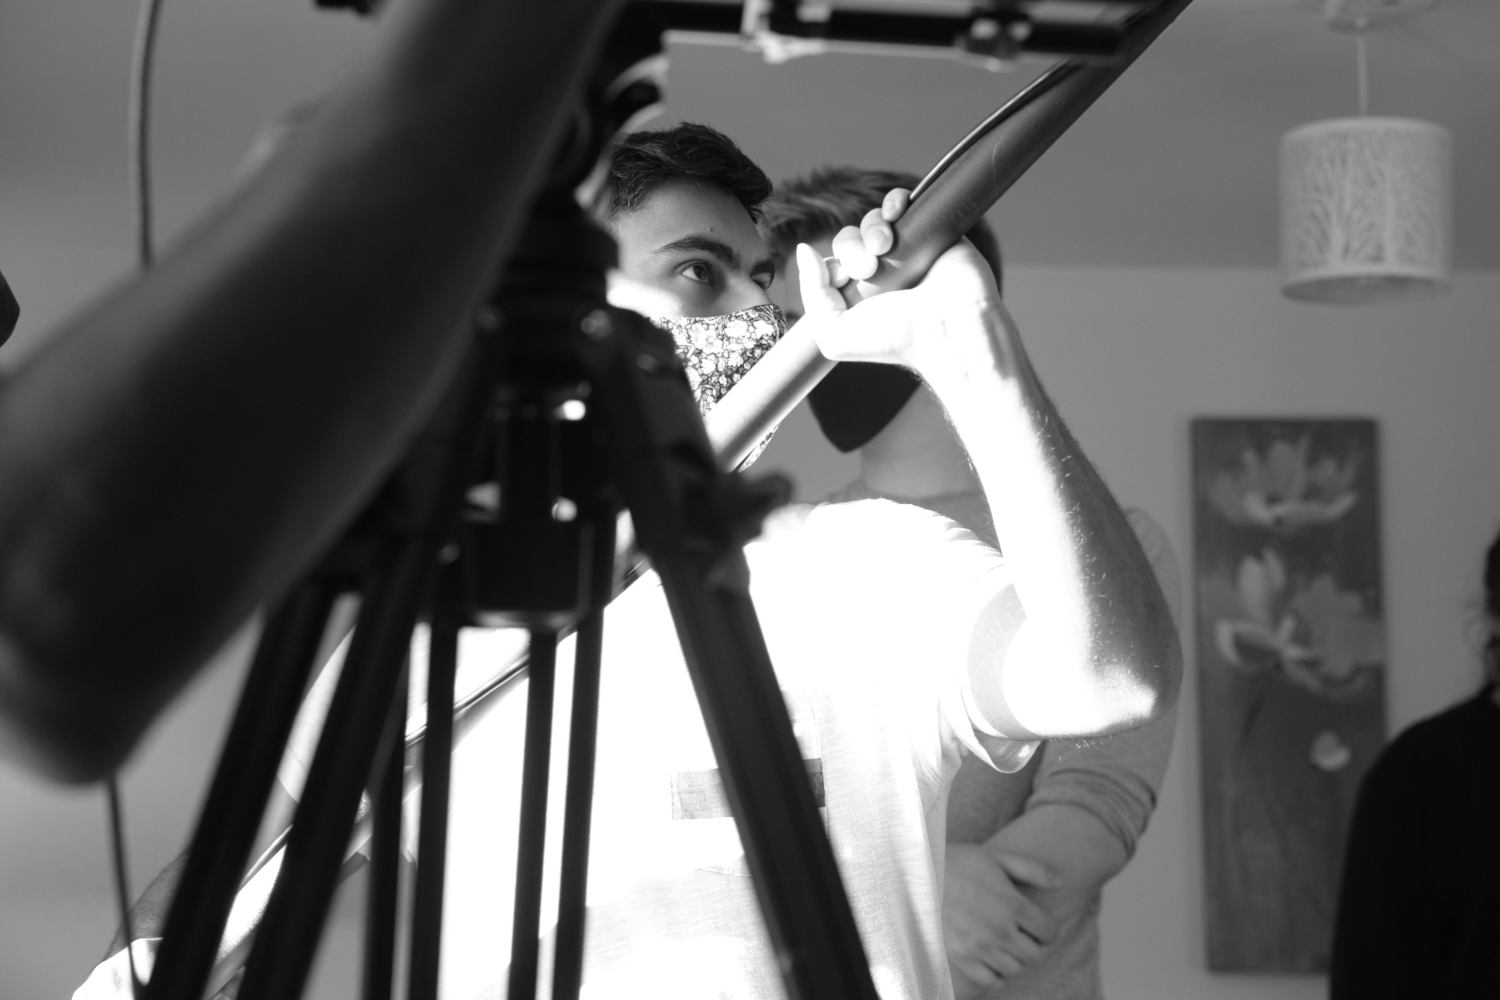 Behind the scenes image from Voyager sci-fi film of sound recordist Aarif Chumbers-Ali taken by Matt Towers